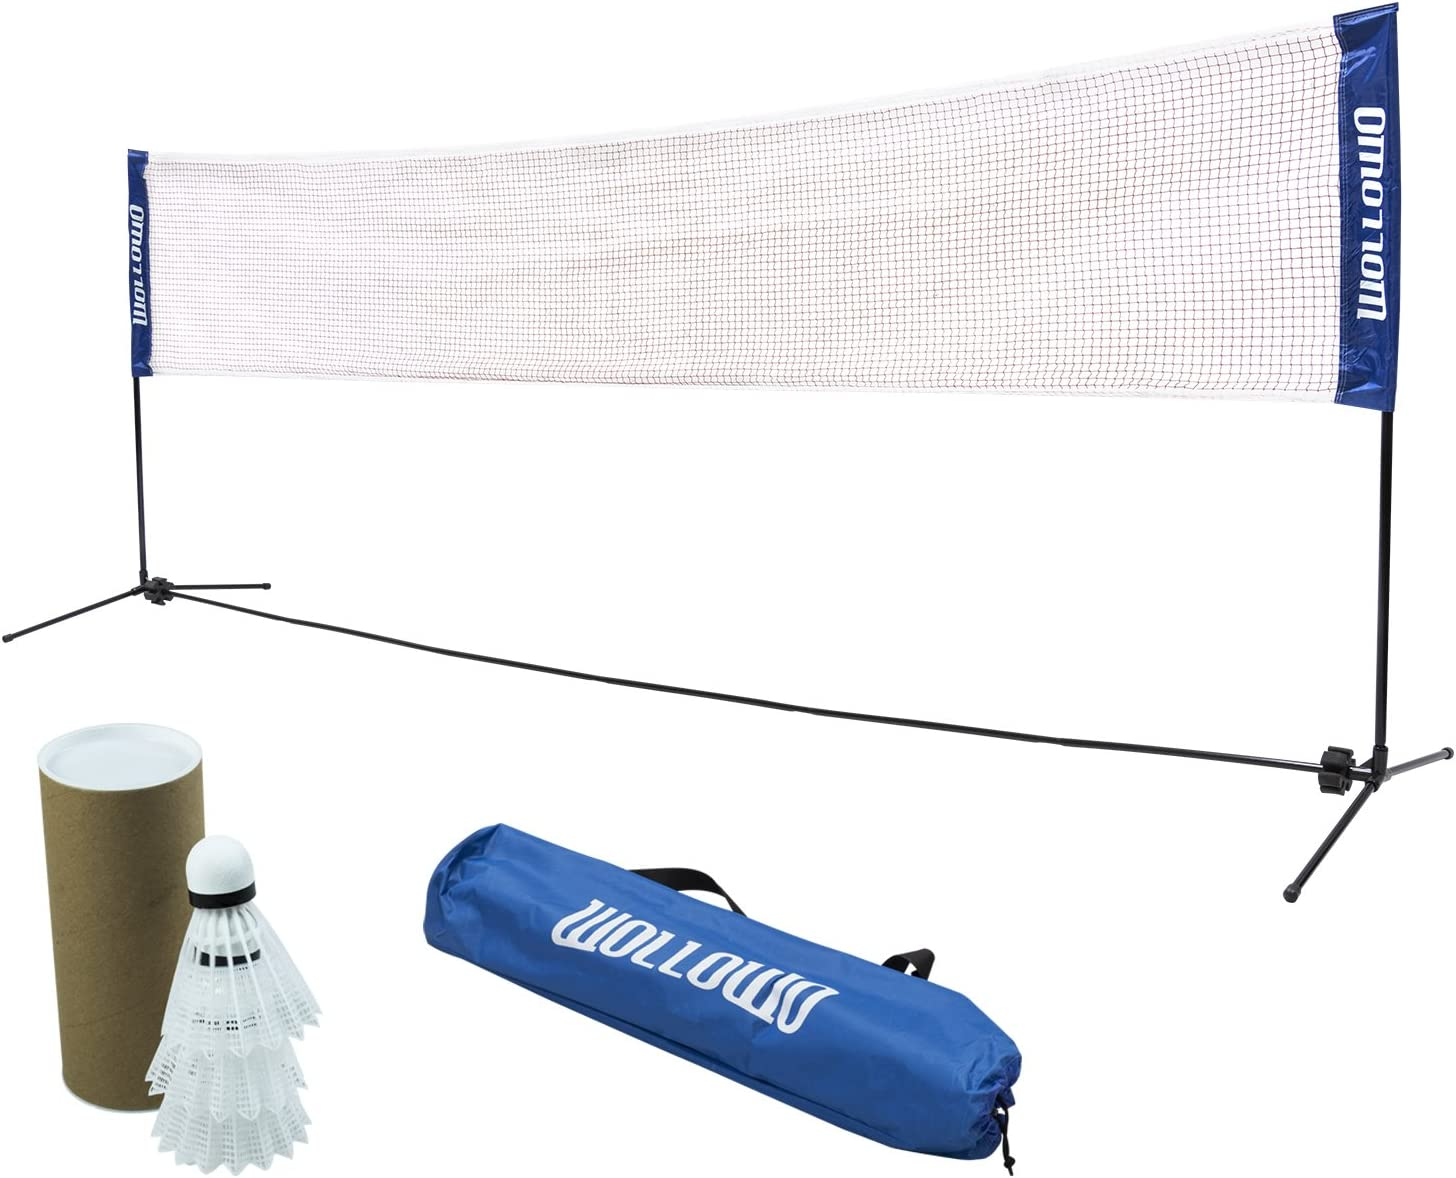 Wollowo 6 M pliable portable Badminton Tennis Volleyball Net Cadre Support